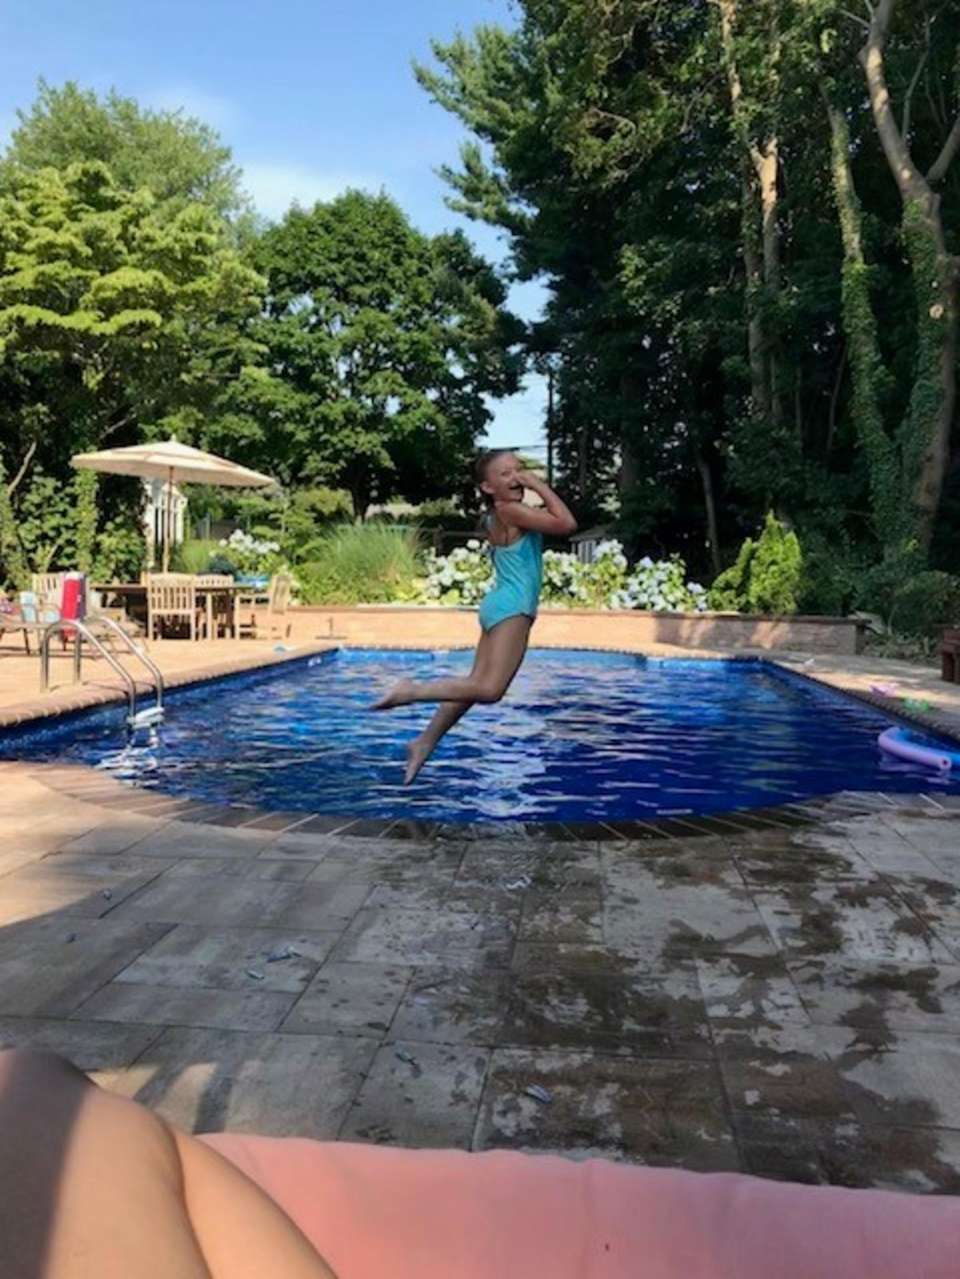 Gianna jumping in the pool